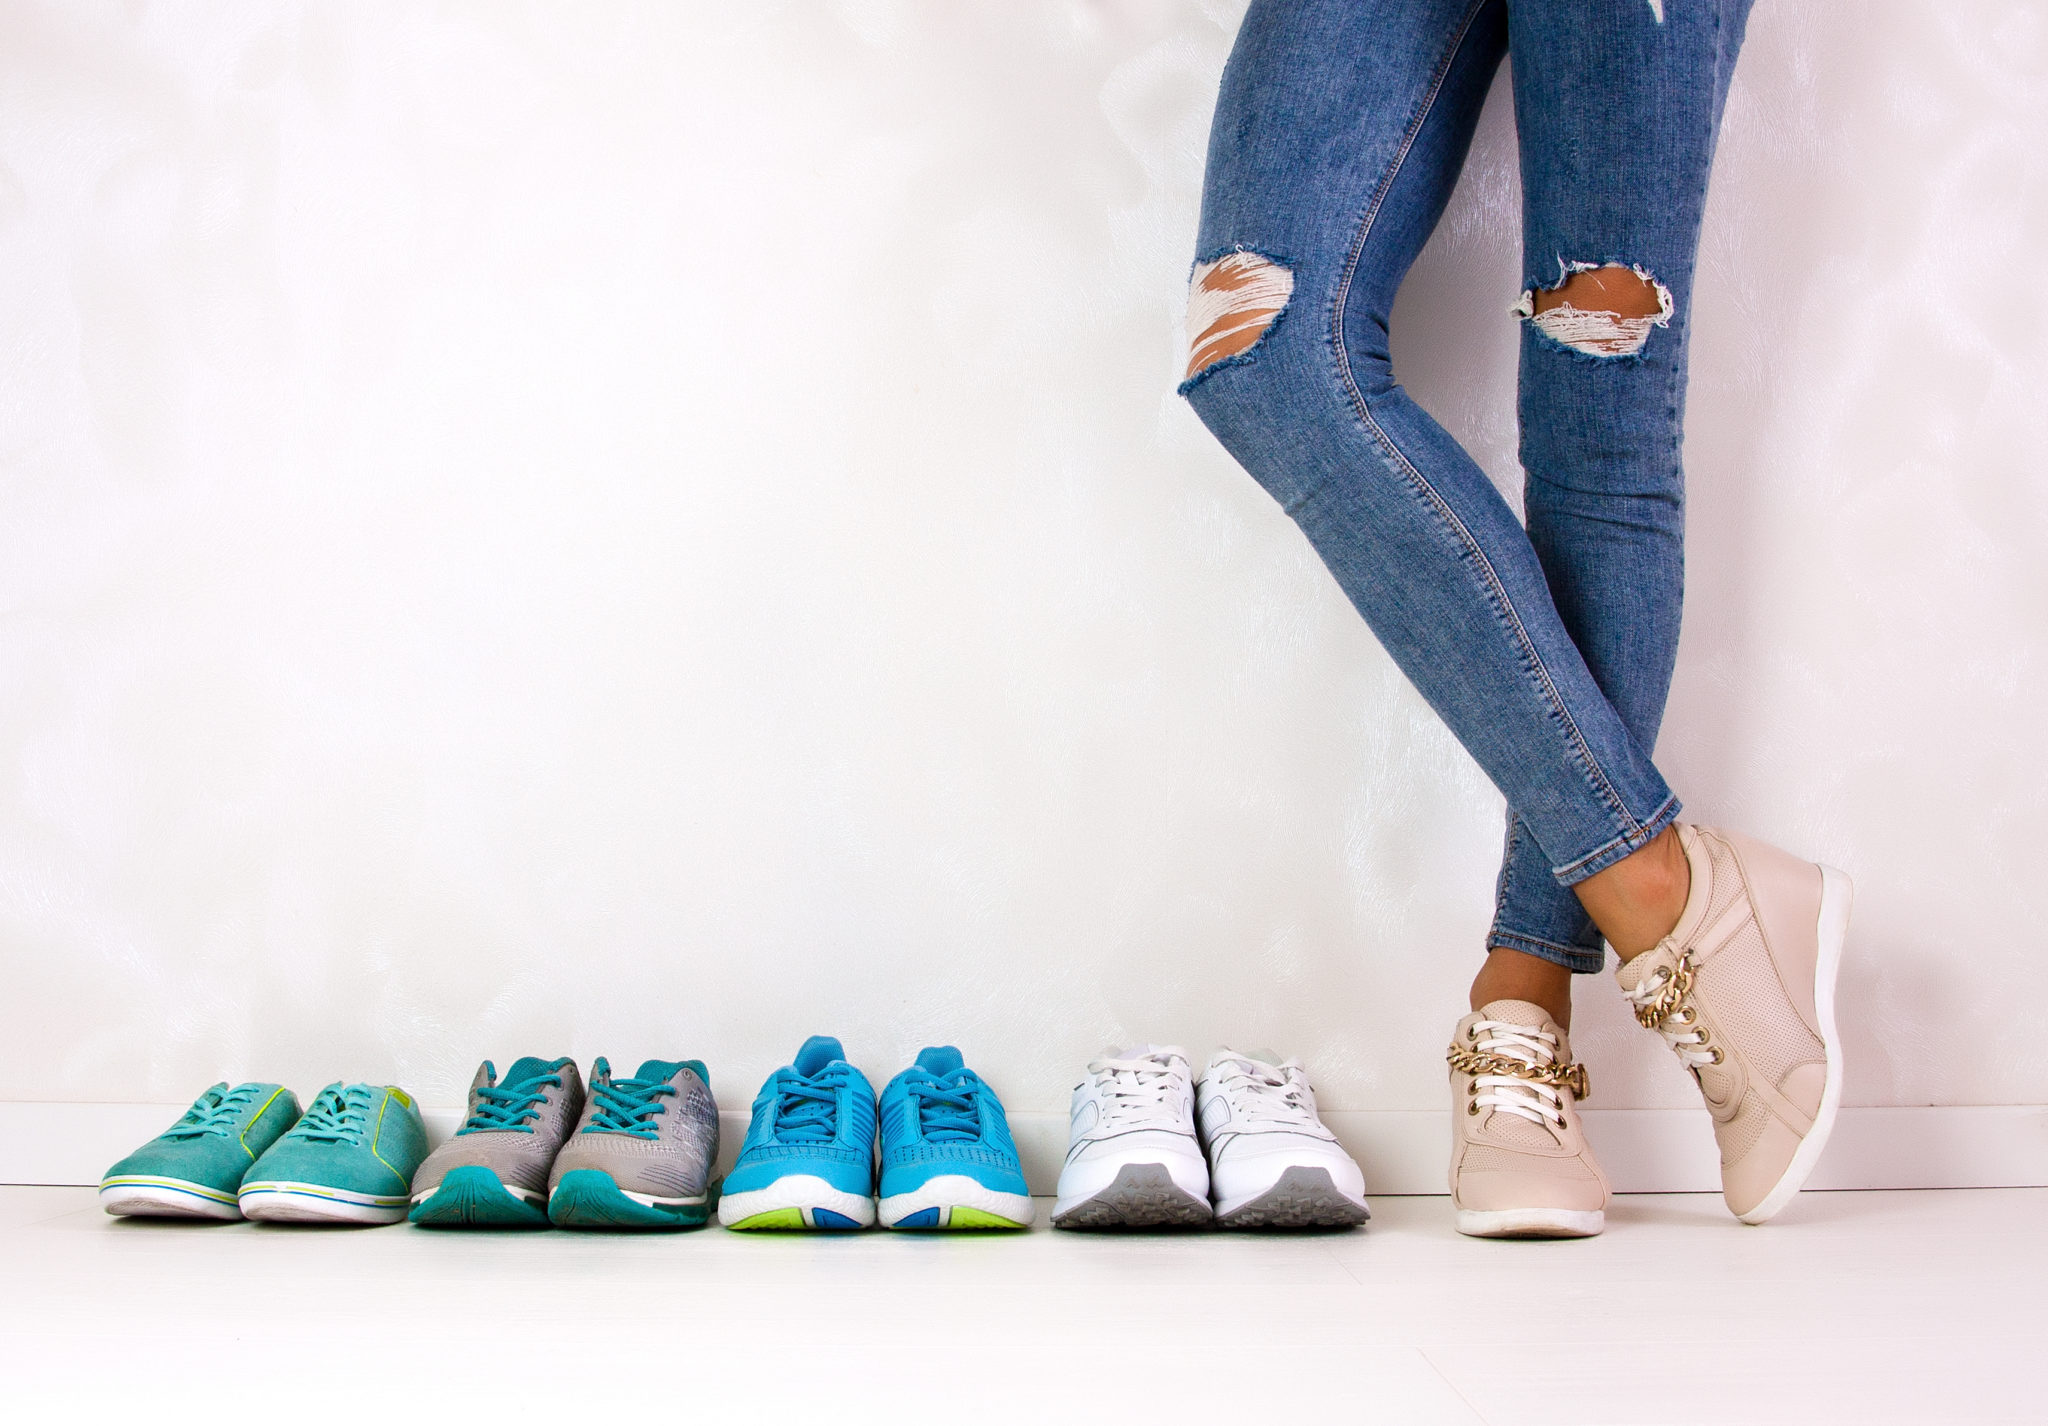 A sporty girl in jeans chooses which sneakers to go for training Several pairs of sports shoes and legs